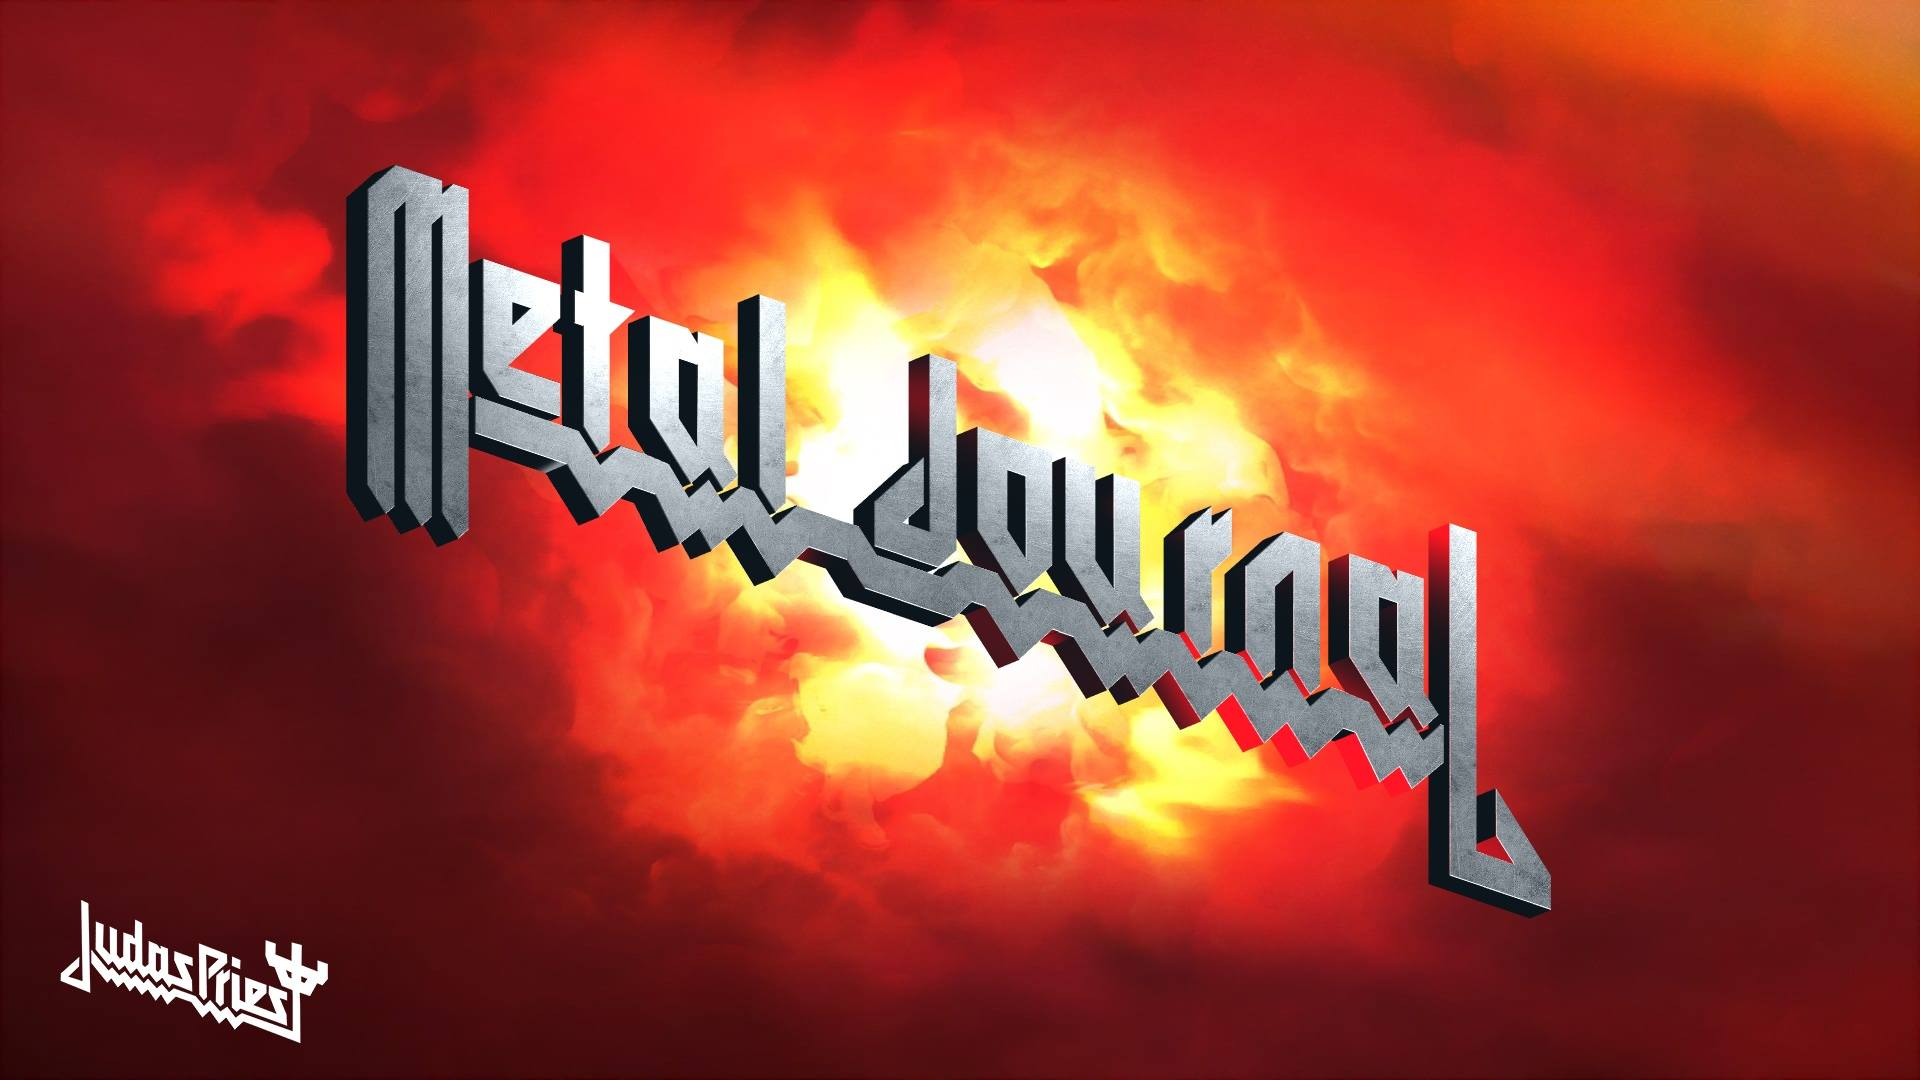 metal journal logo judas priest